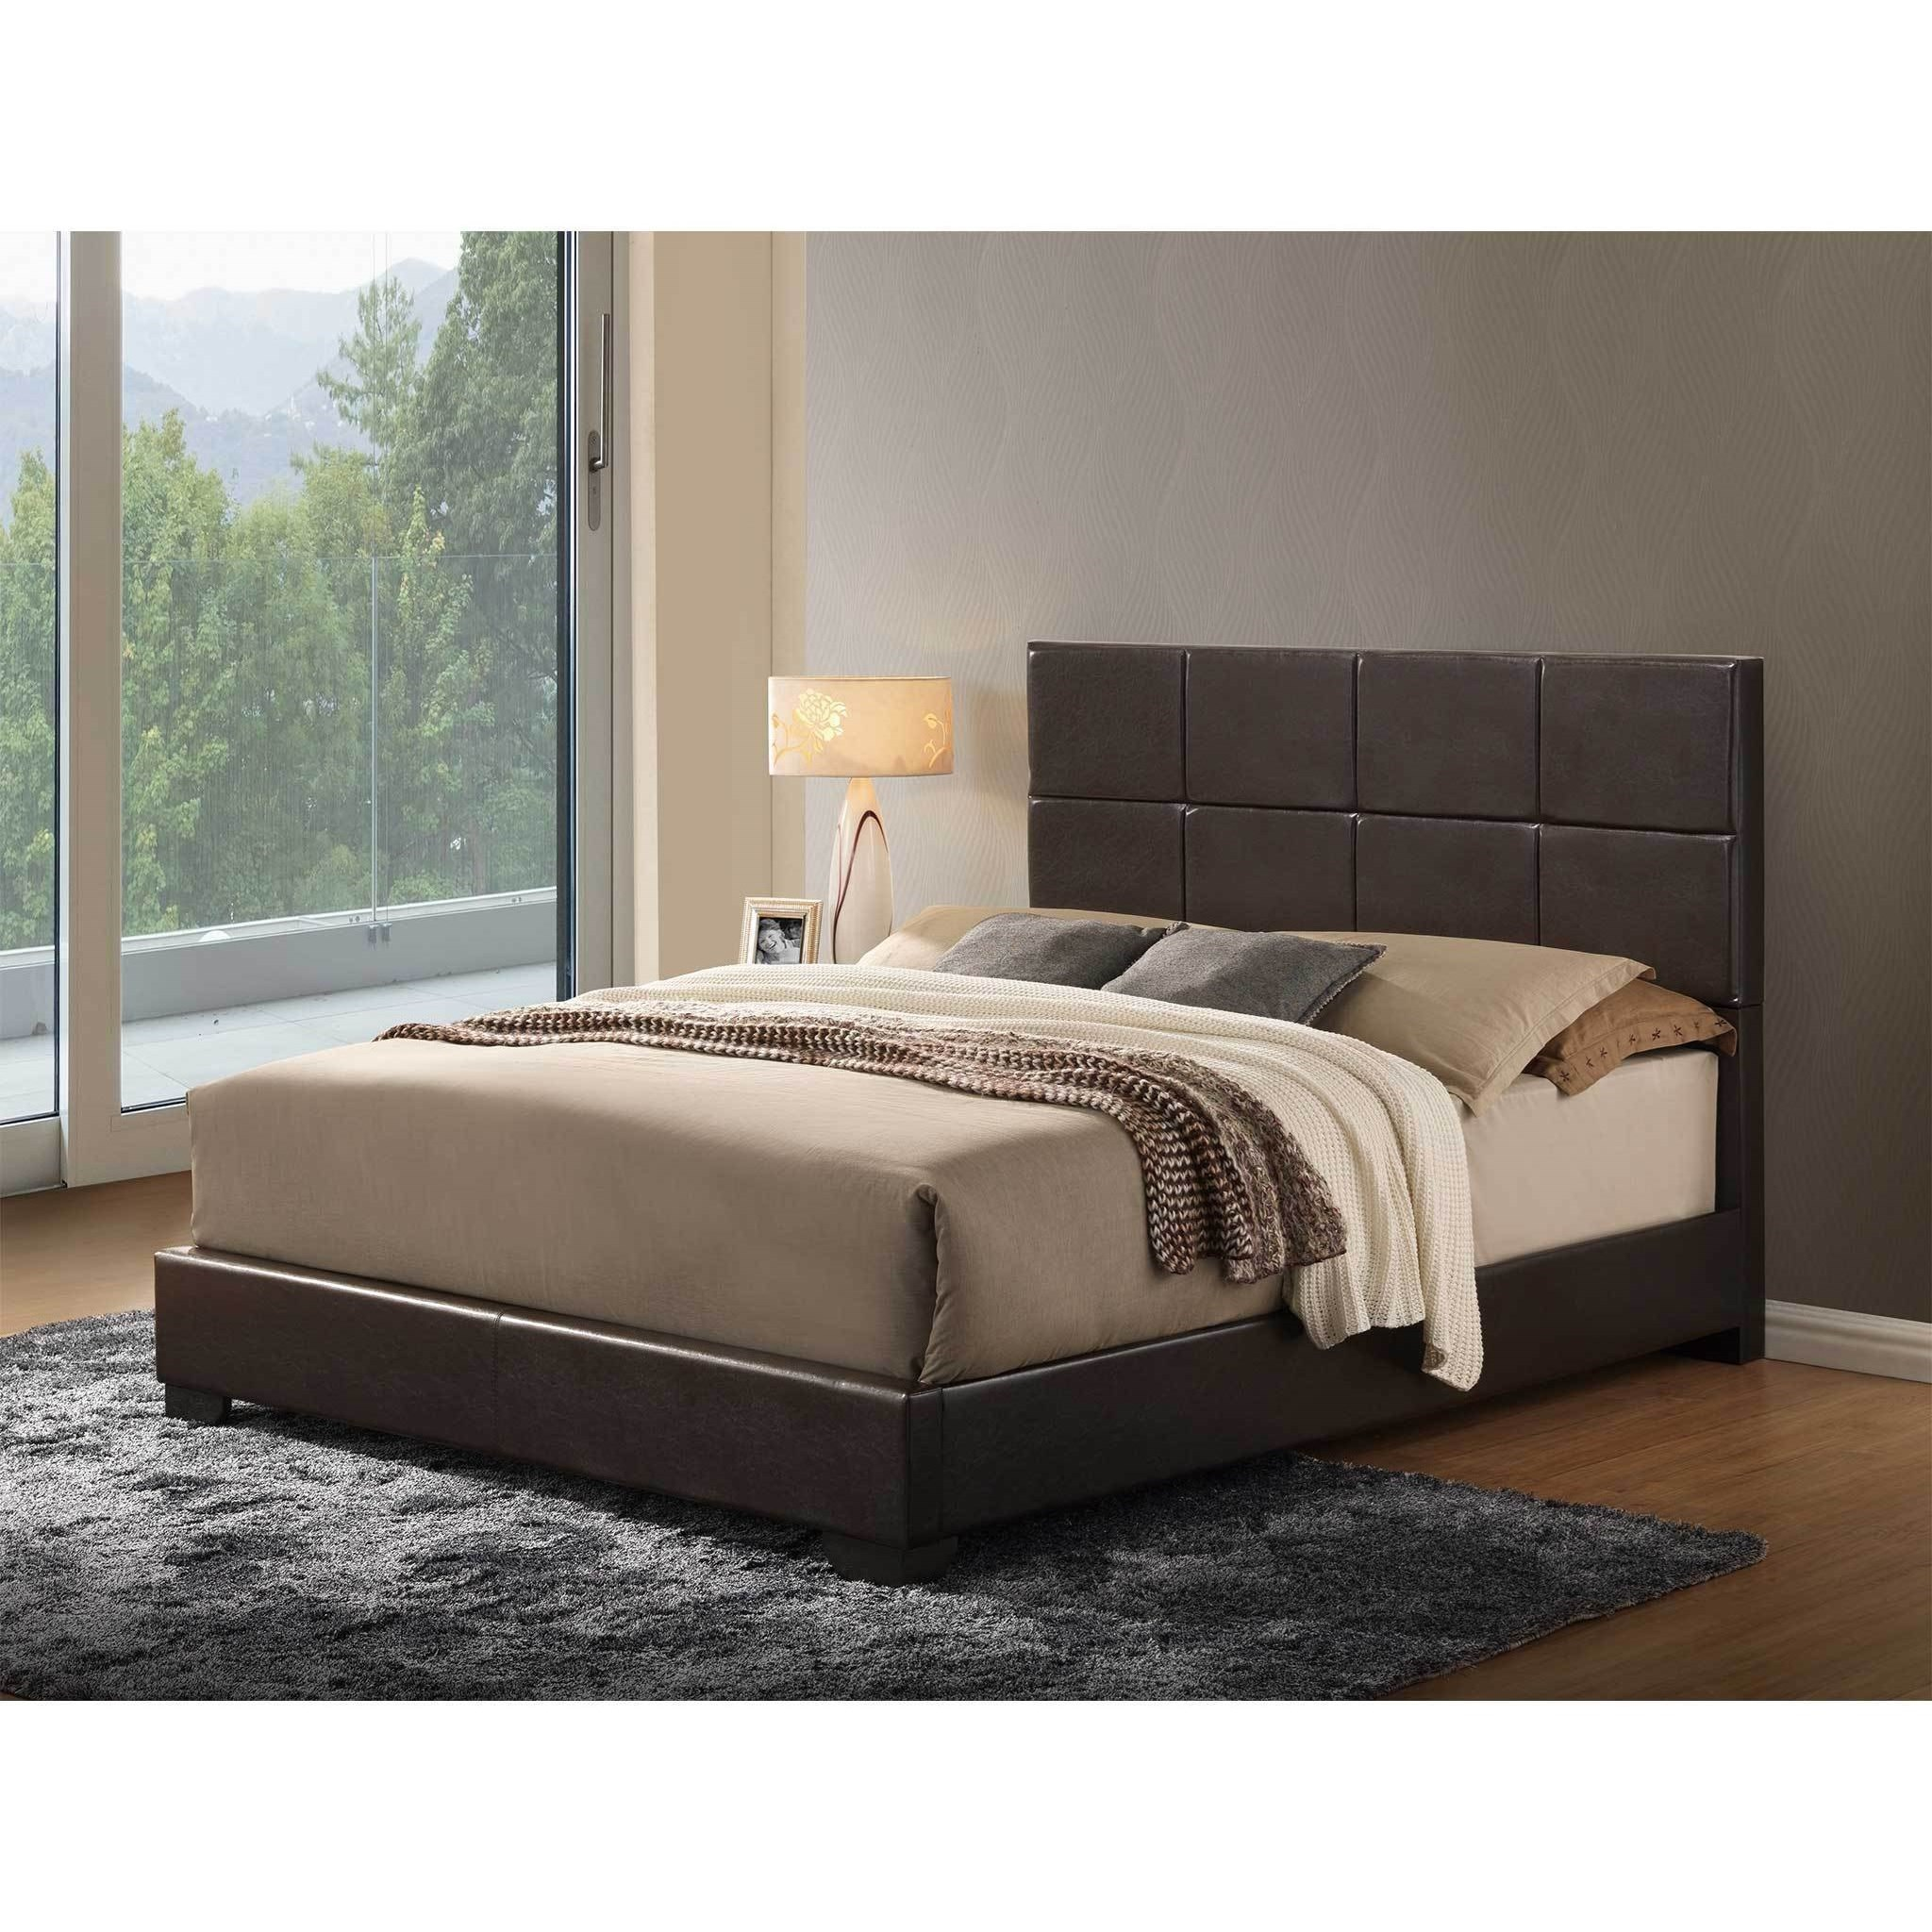 8566 Upholstered Full Bed by Global Furniture at Nassau Furniture and Mattress